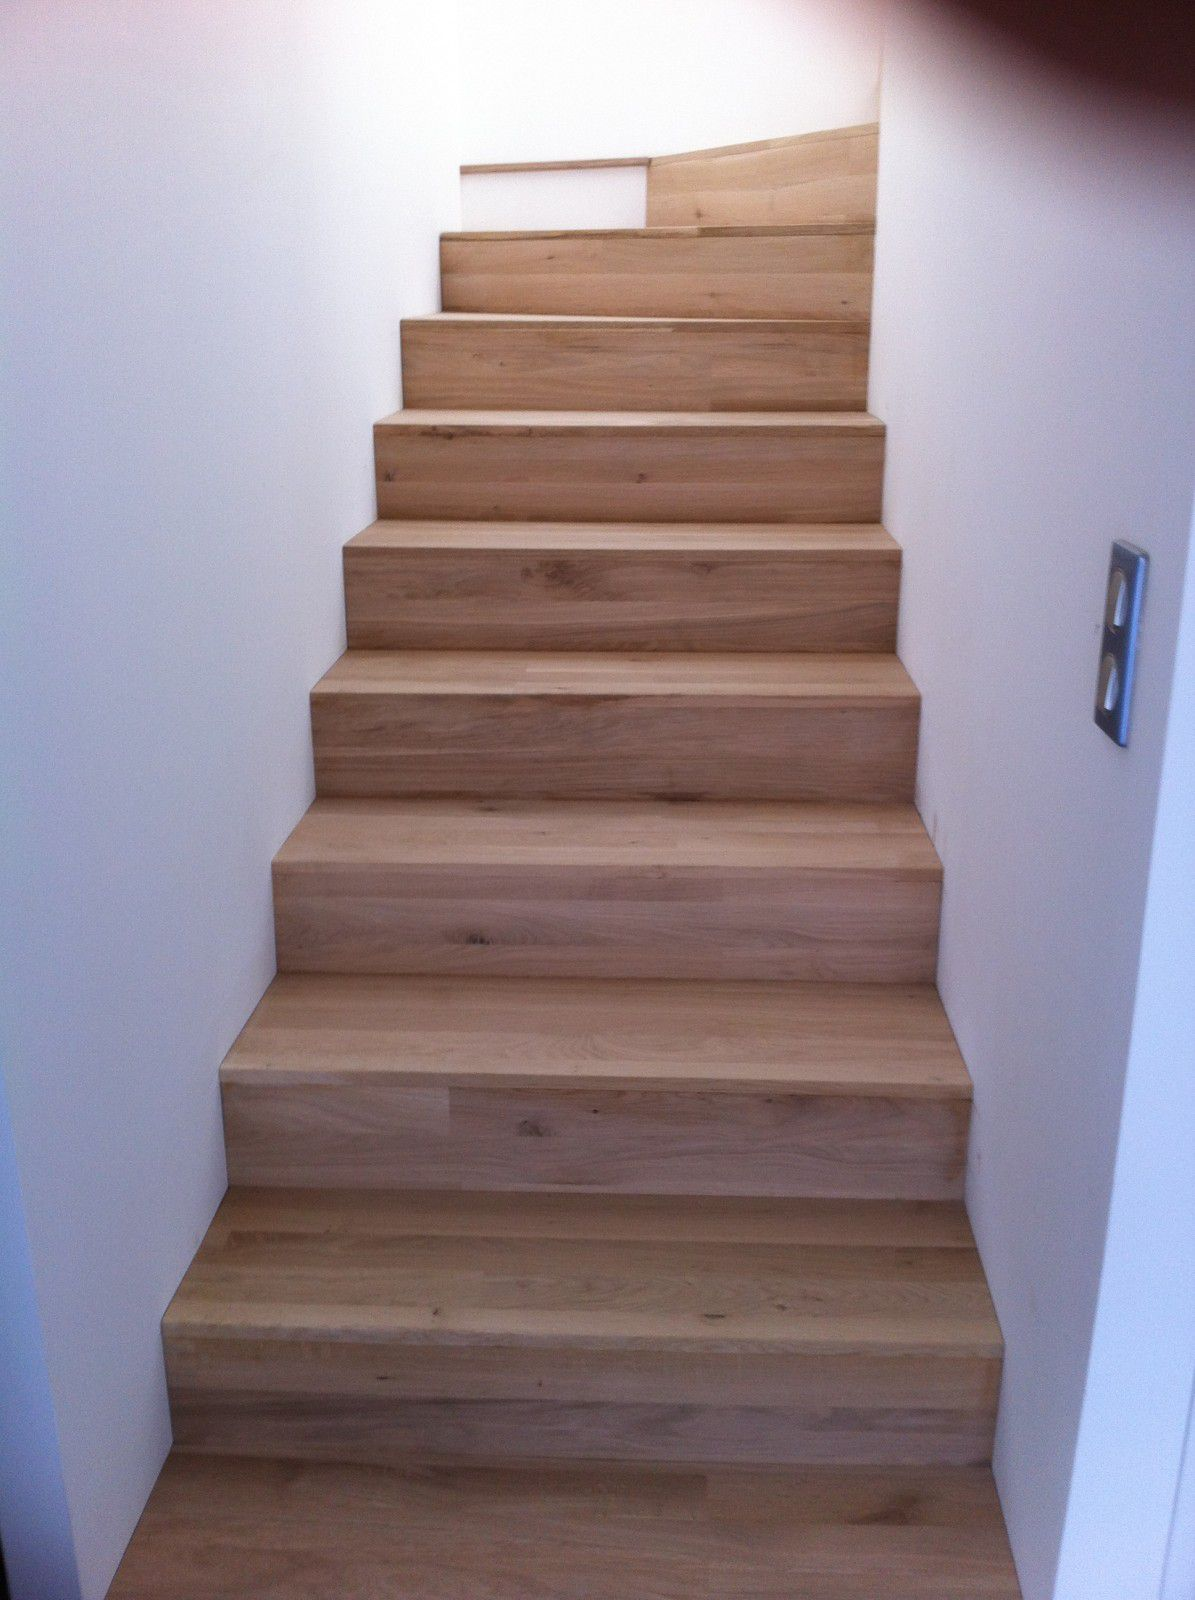 Album escalier beton chene menuiserie agencement design for Escalier beton design